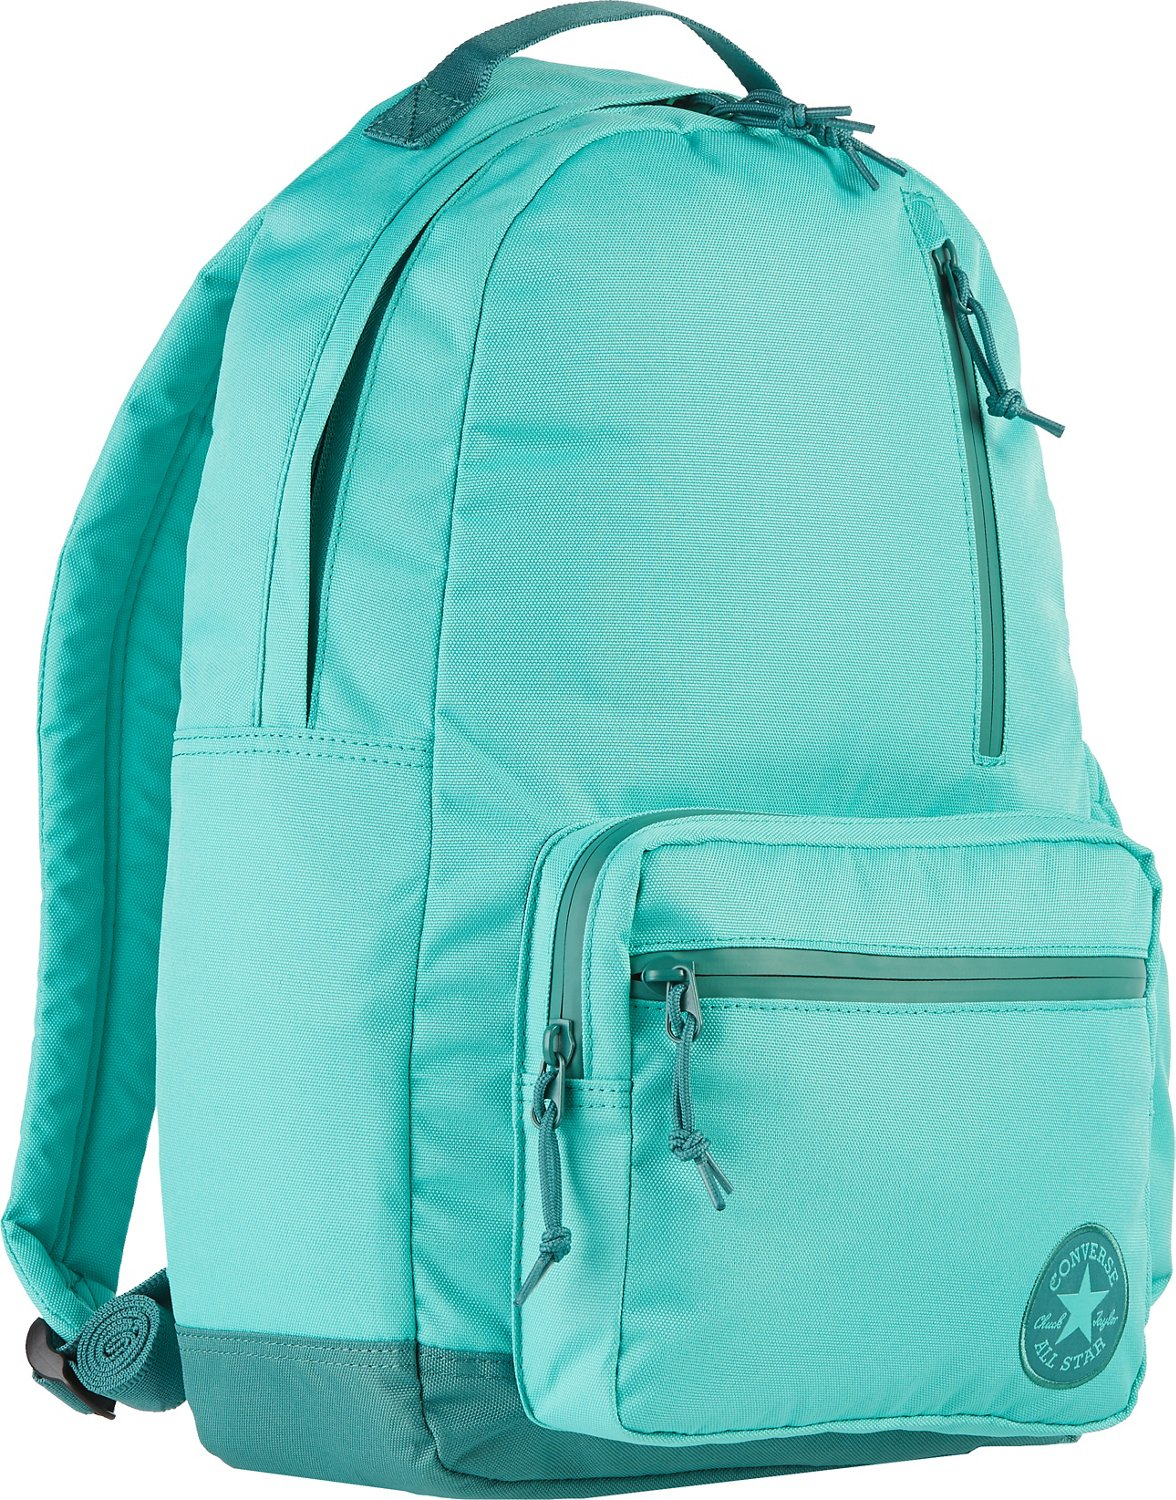 bfe5668cd32ce8 Display product reviews for Converse Go Backpack